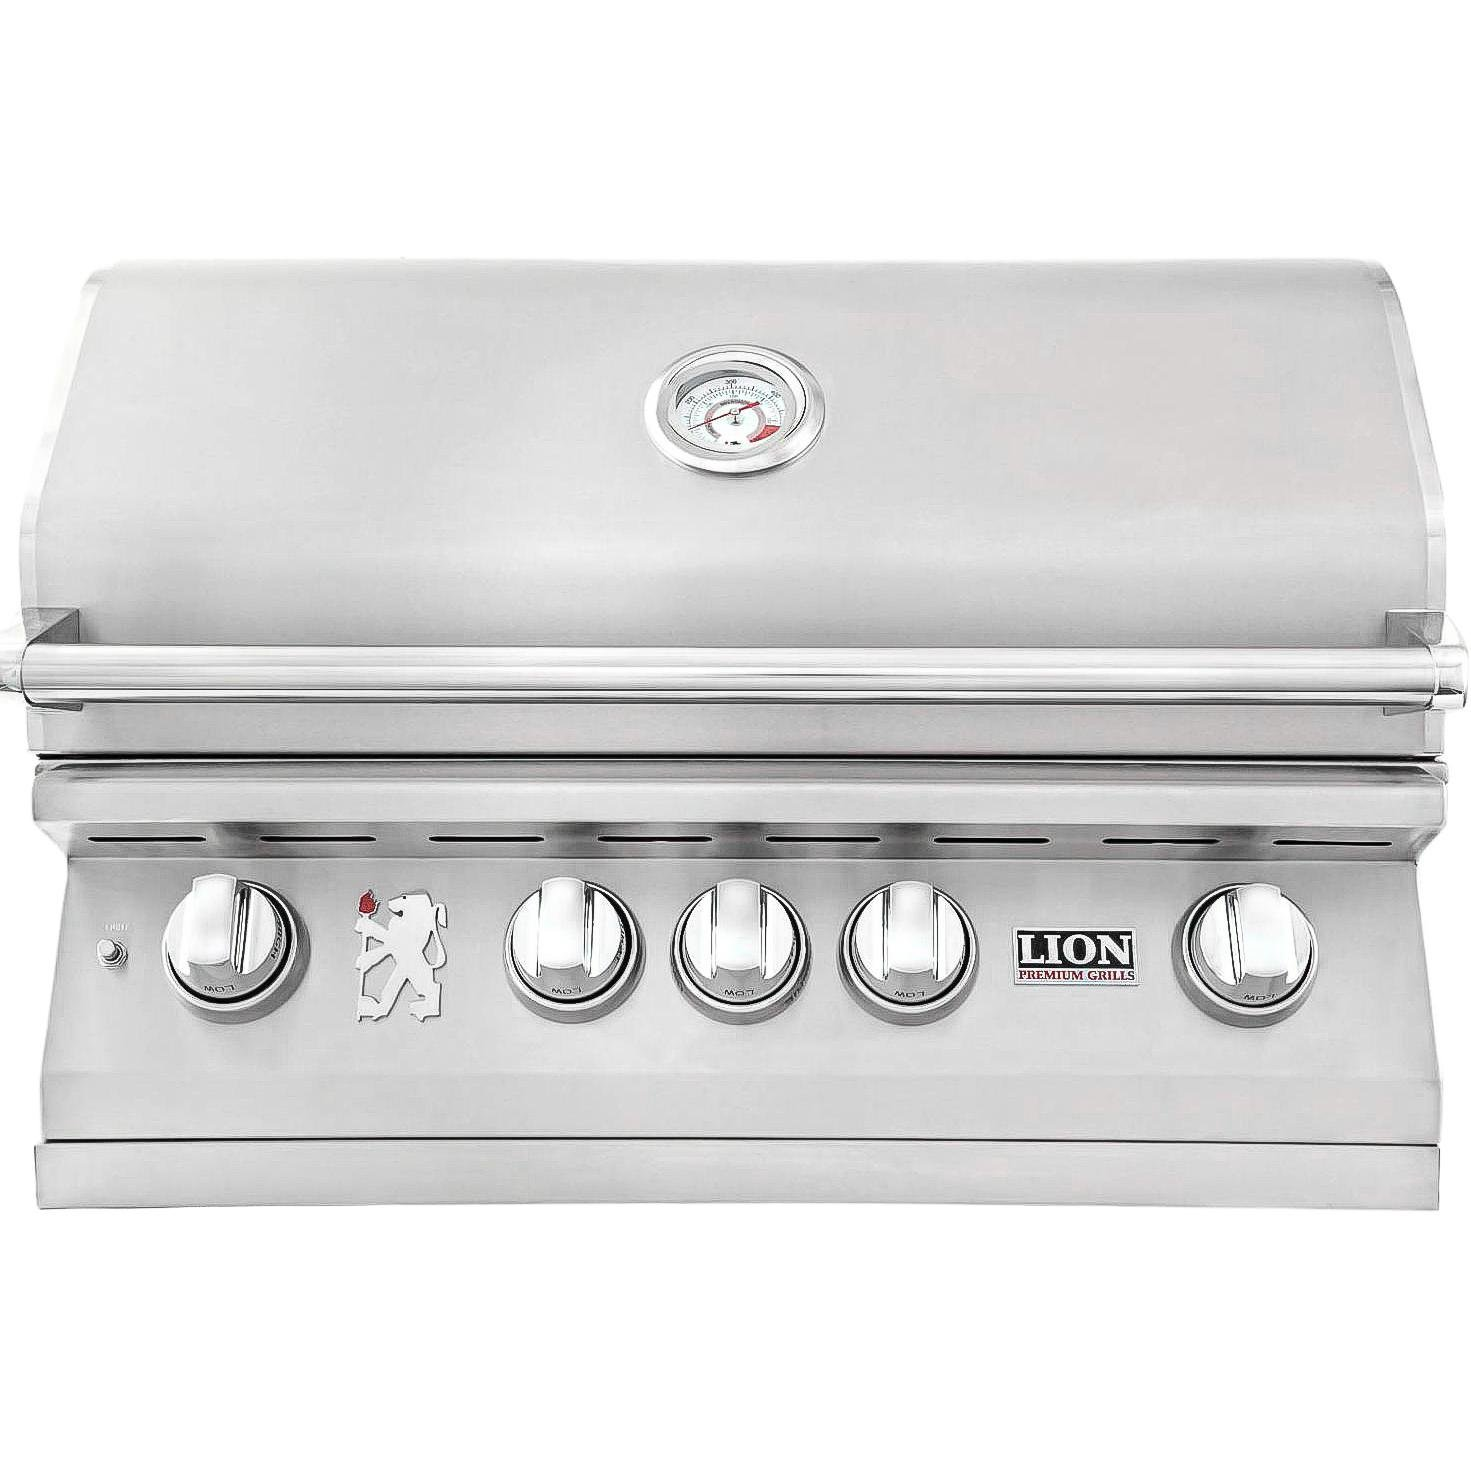 Lion Premium Grills L75623 32 Natural Gas Grill